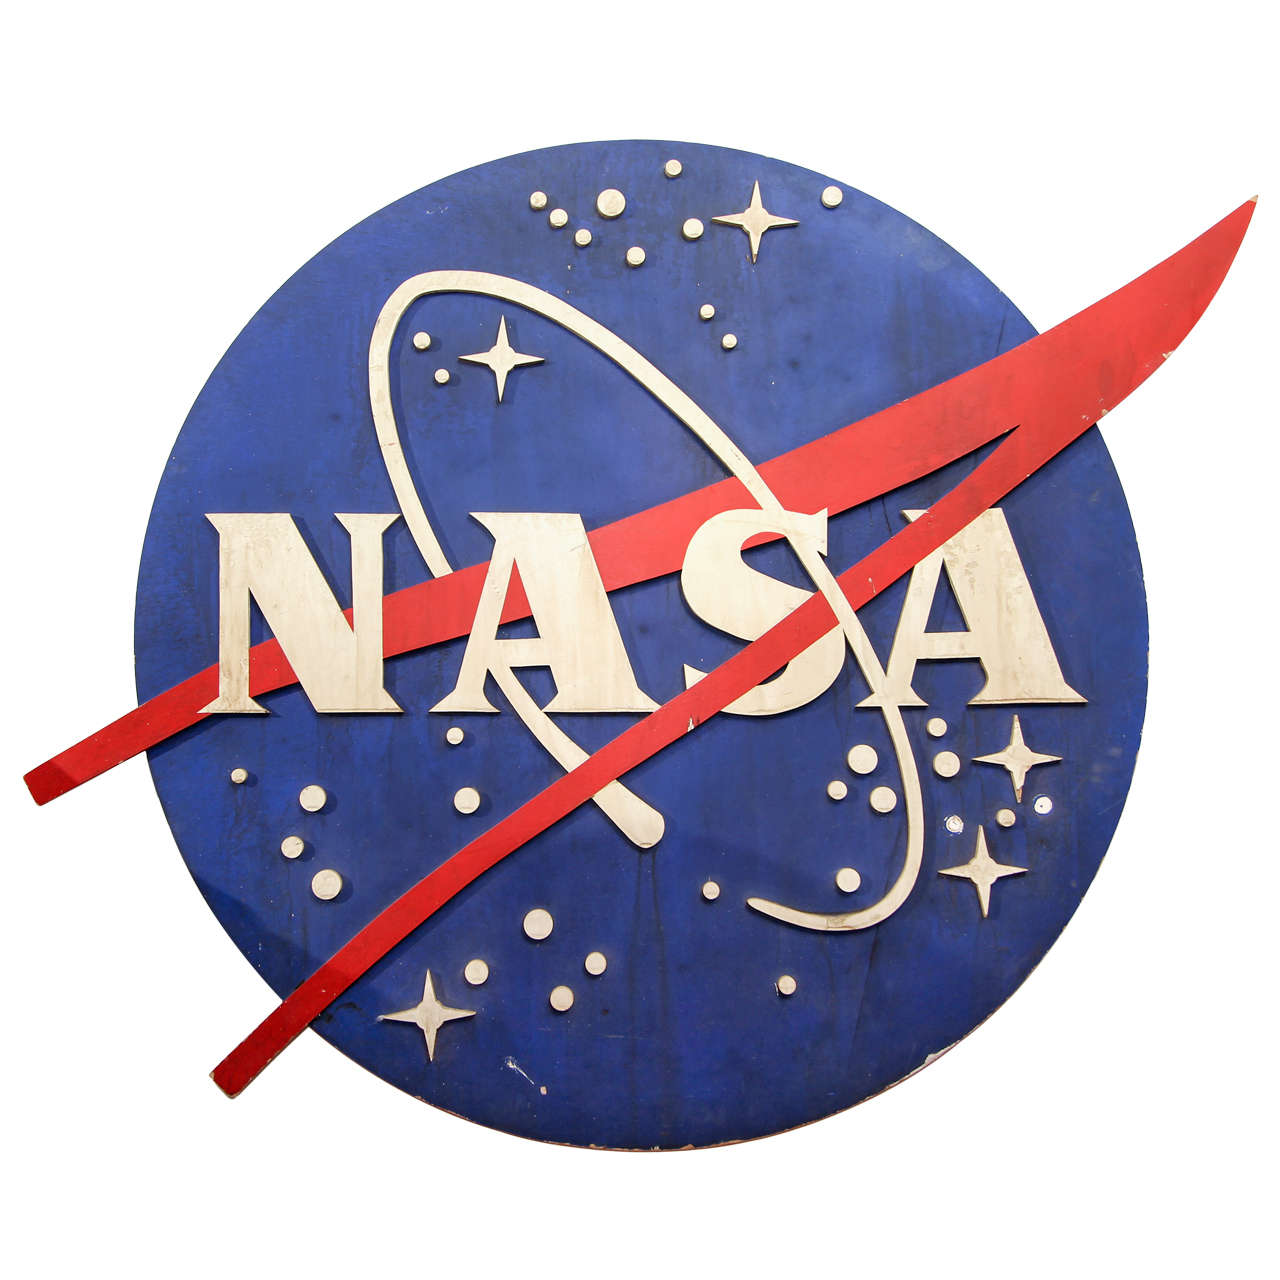 nasa logo from 1960 - photo #6